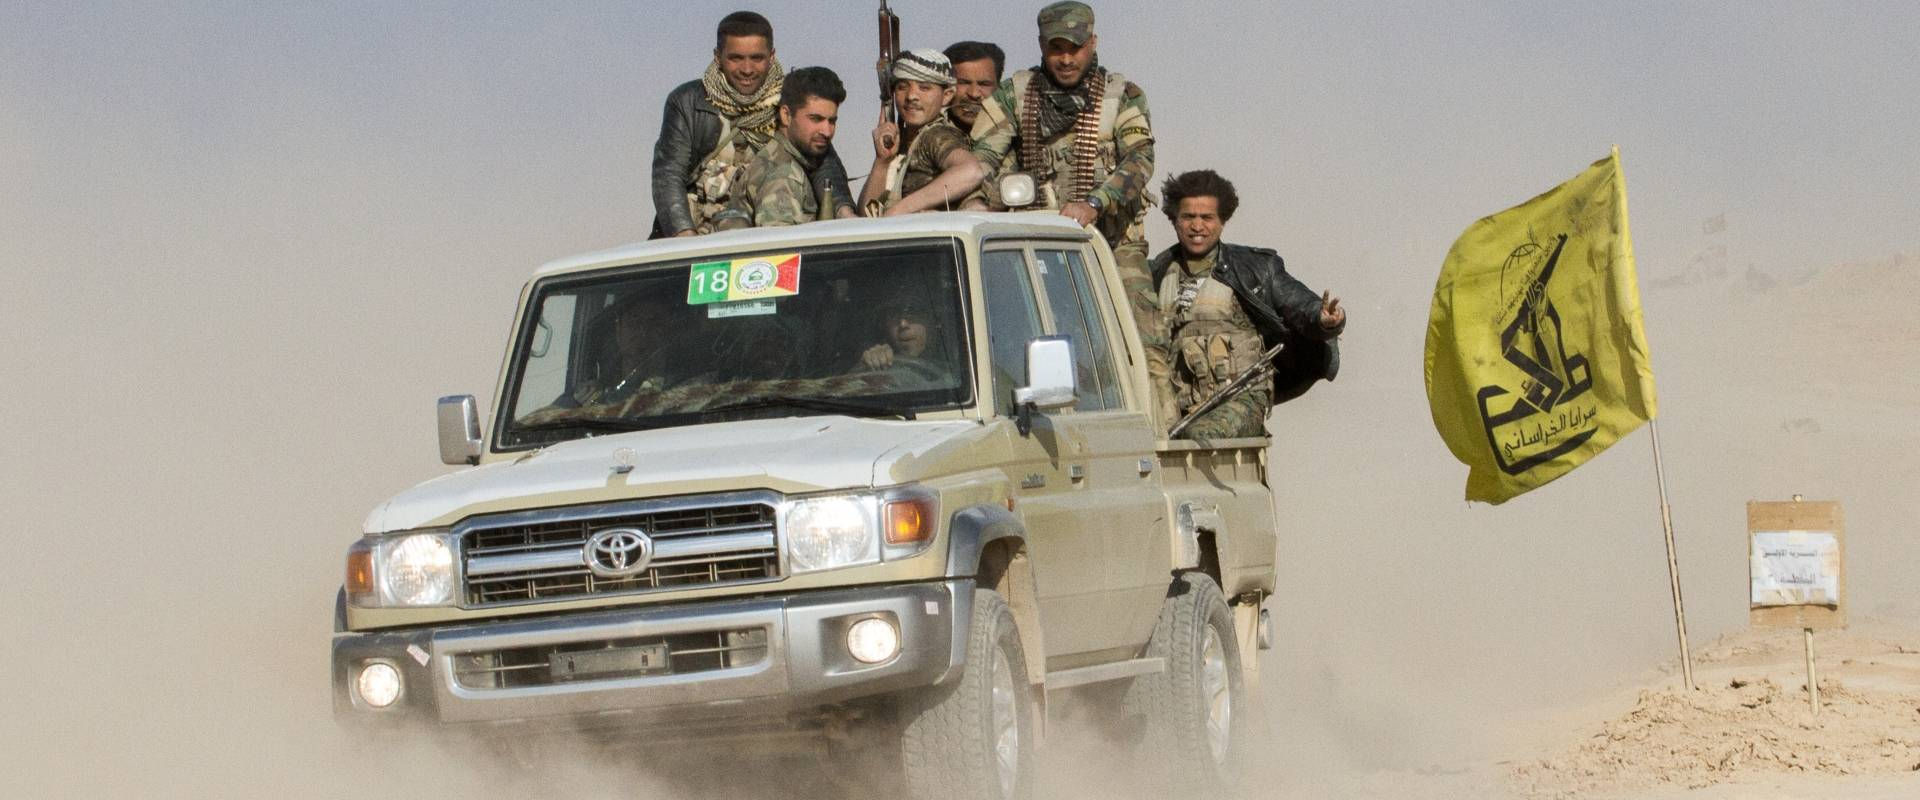 Iraqi militias and the Aramco attack in Saudi Arabia